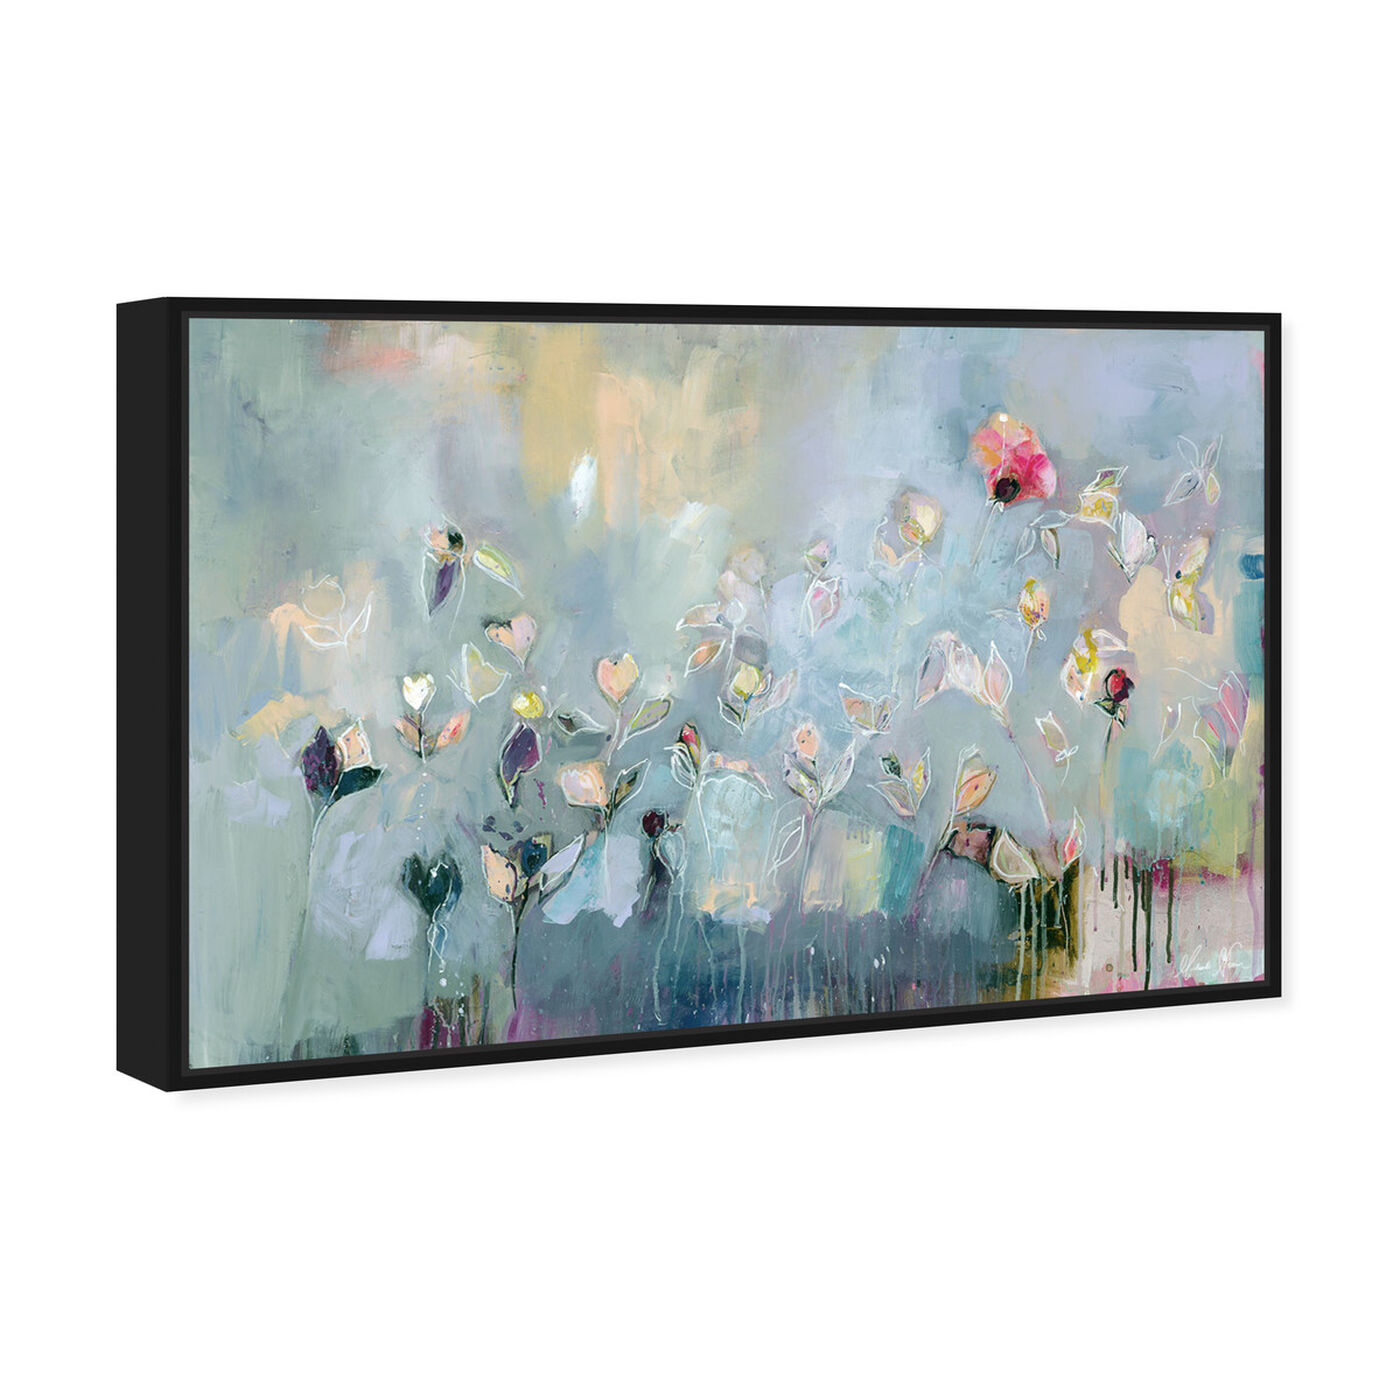 Angled view of Michaela Nessim - Infinitely Divine featuring abstract and flowers art.